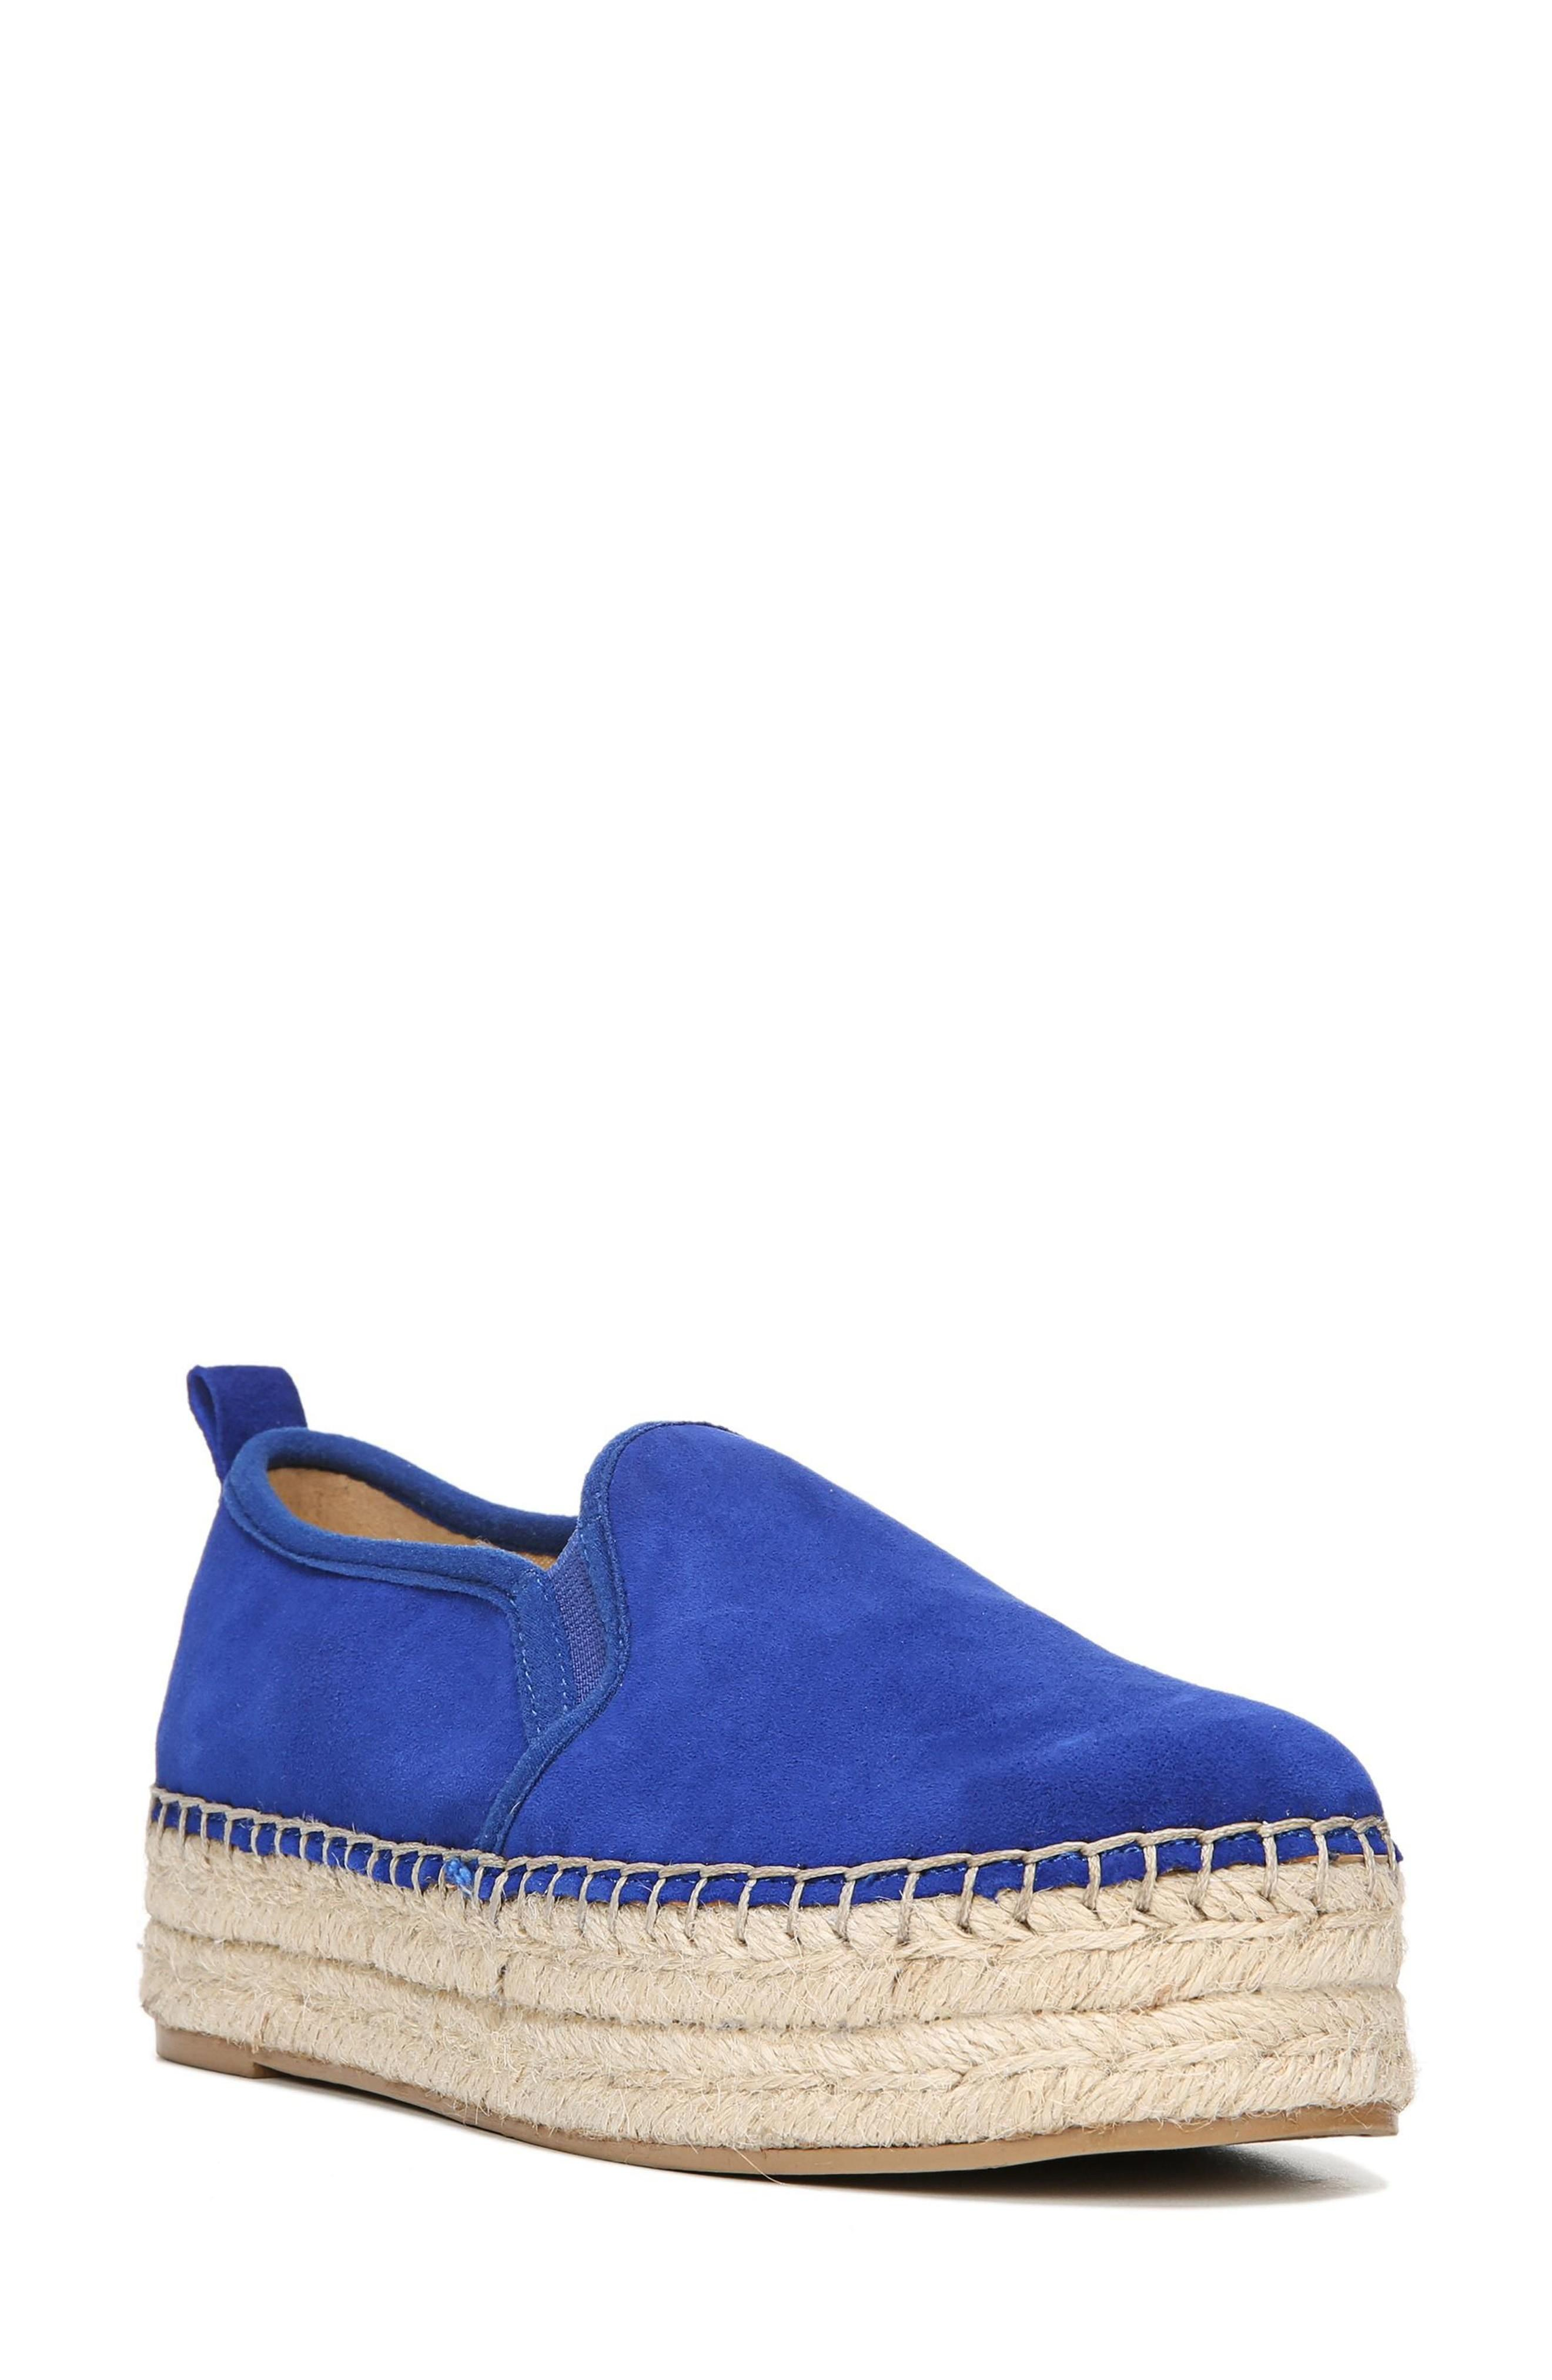 8533883f3 Sam Edelman 'Carrin' Espadrille Flat In Nautical Blue Suede | ModeSens